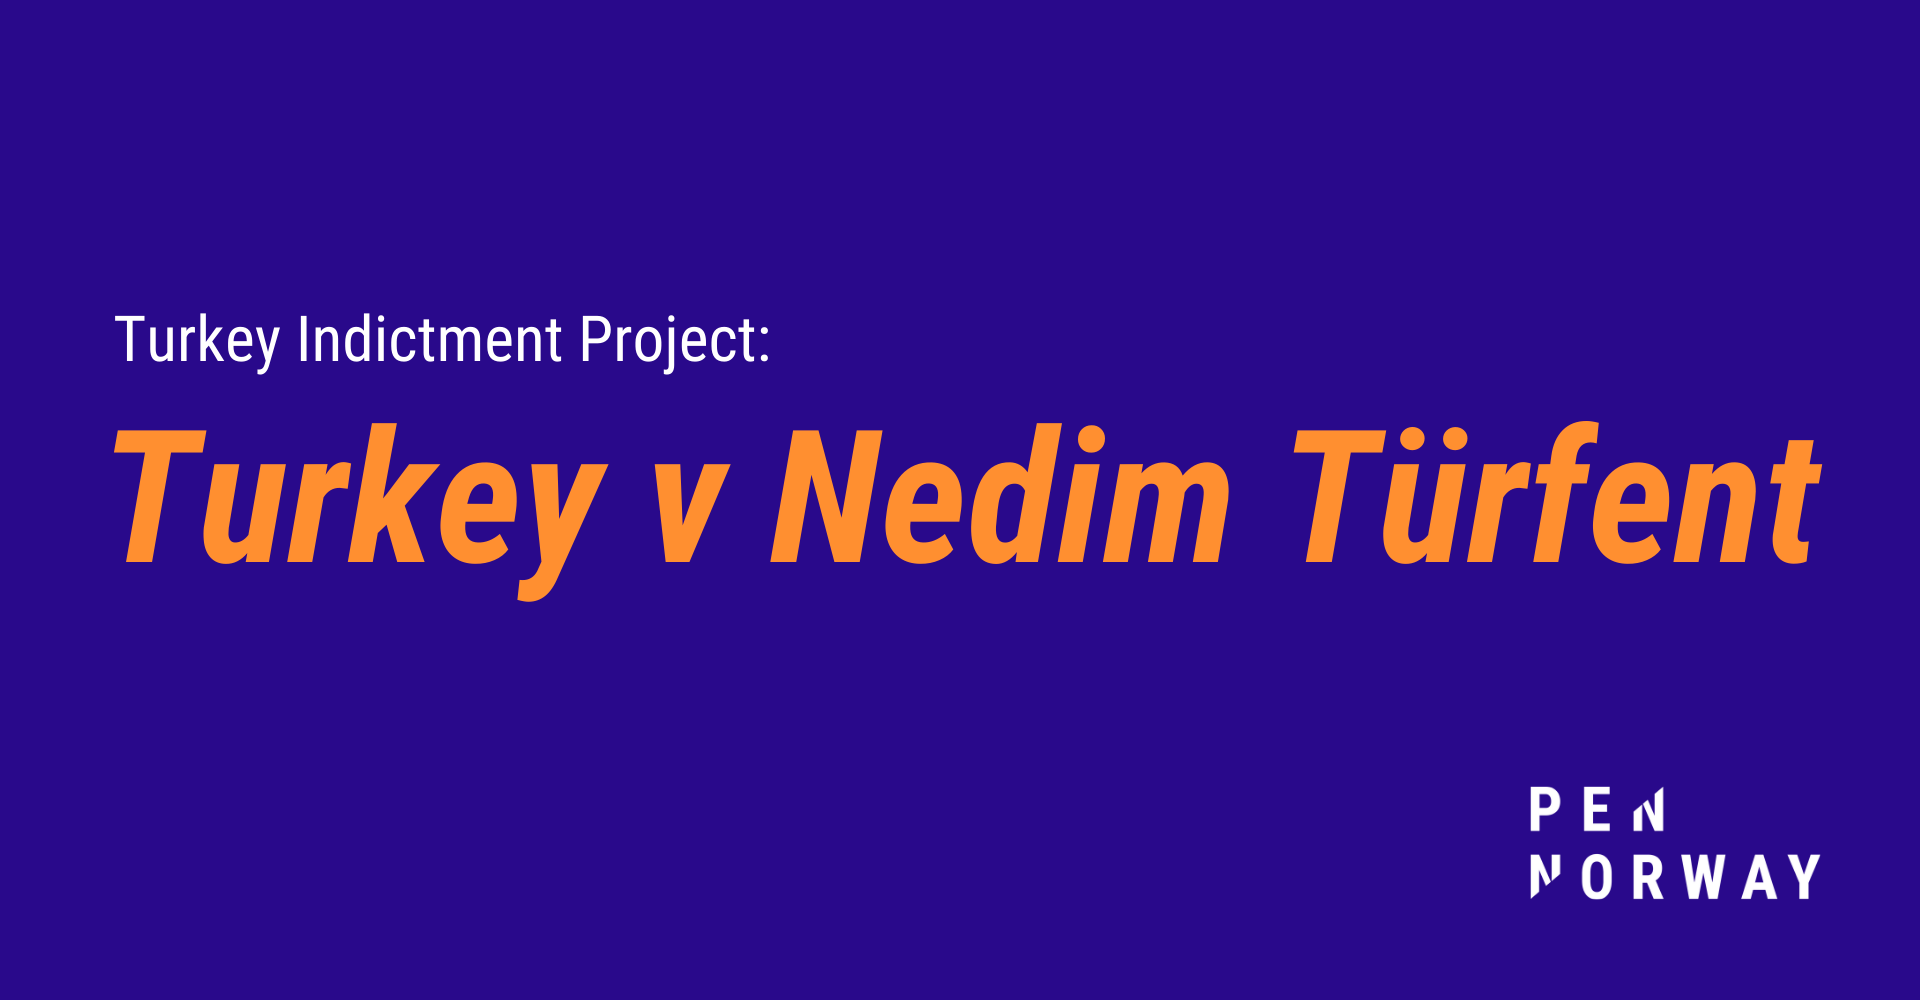 Turkey Indictment Project: Turkey v Nedim Türfent examined